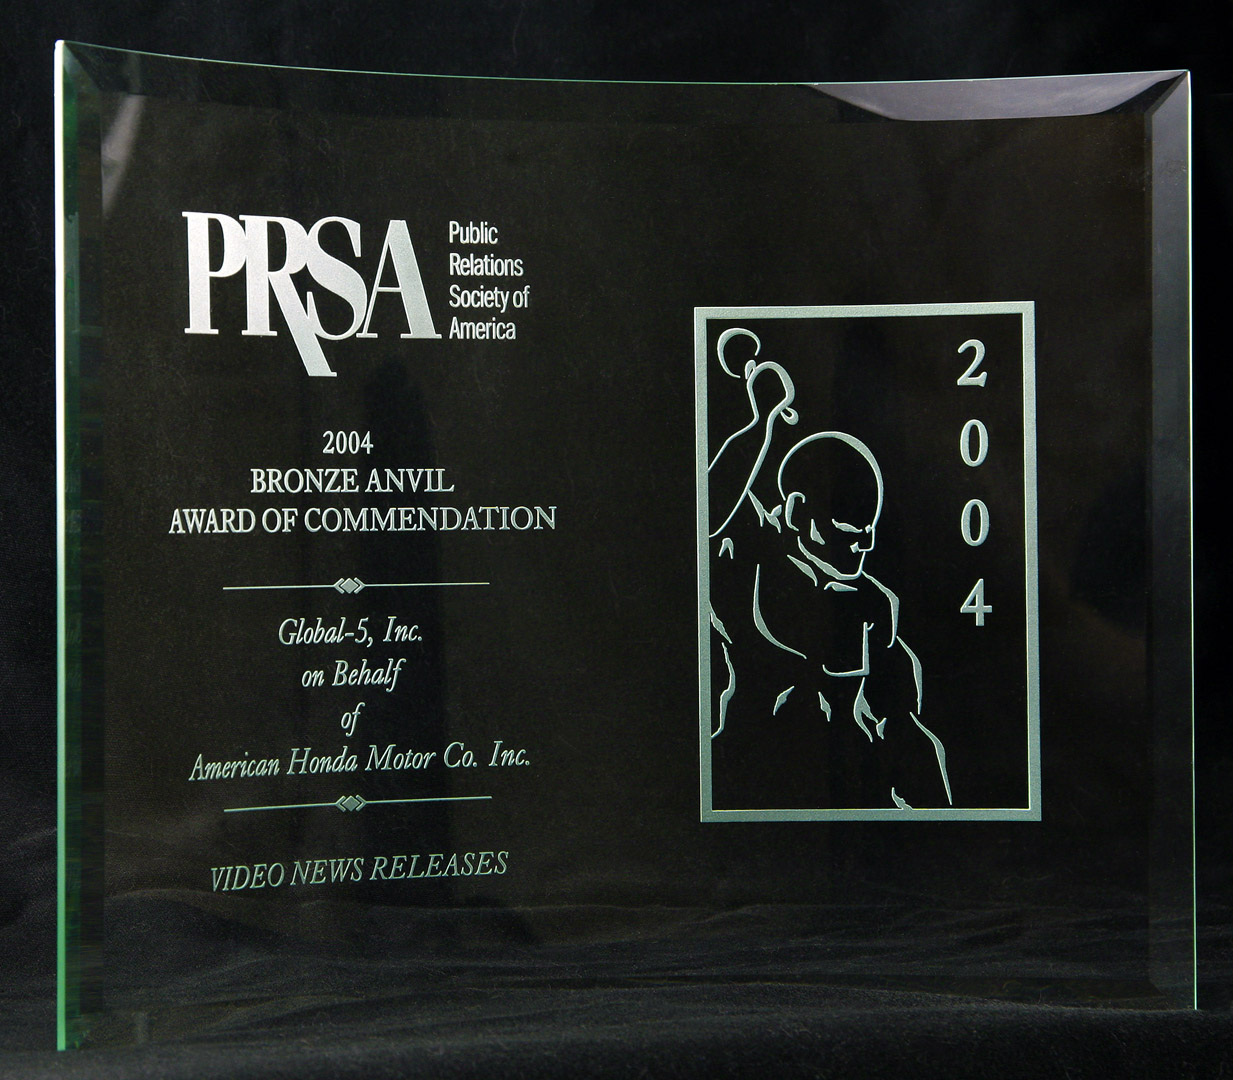 PRSA's 2004 Bronze Anvil Award